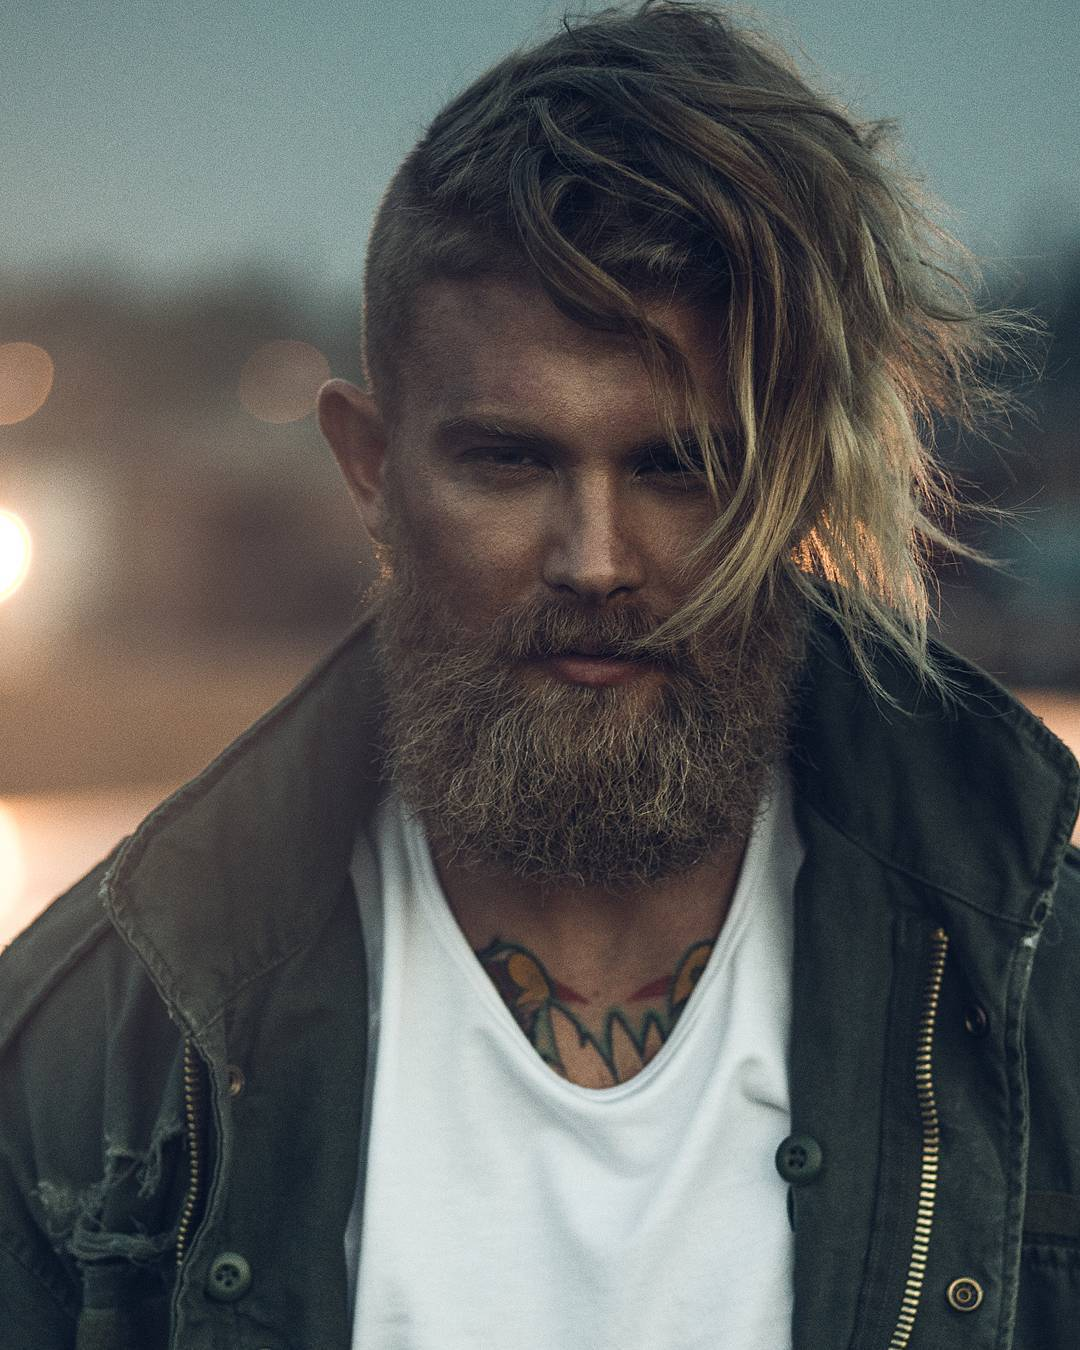 80 Best Undercut Hairstyles for Men - 2018 Styling Ideas